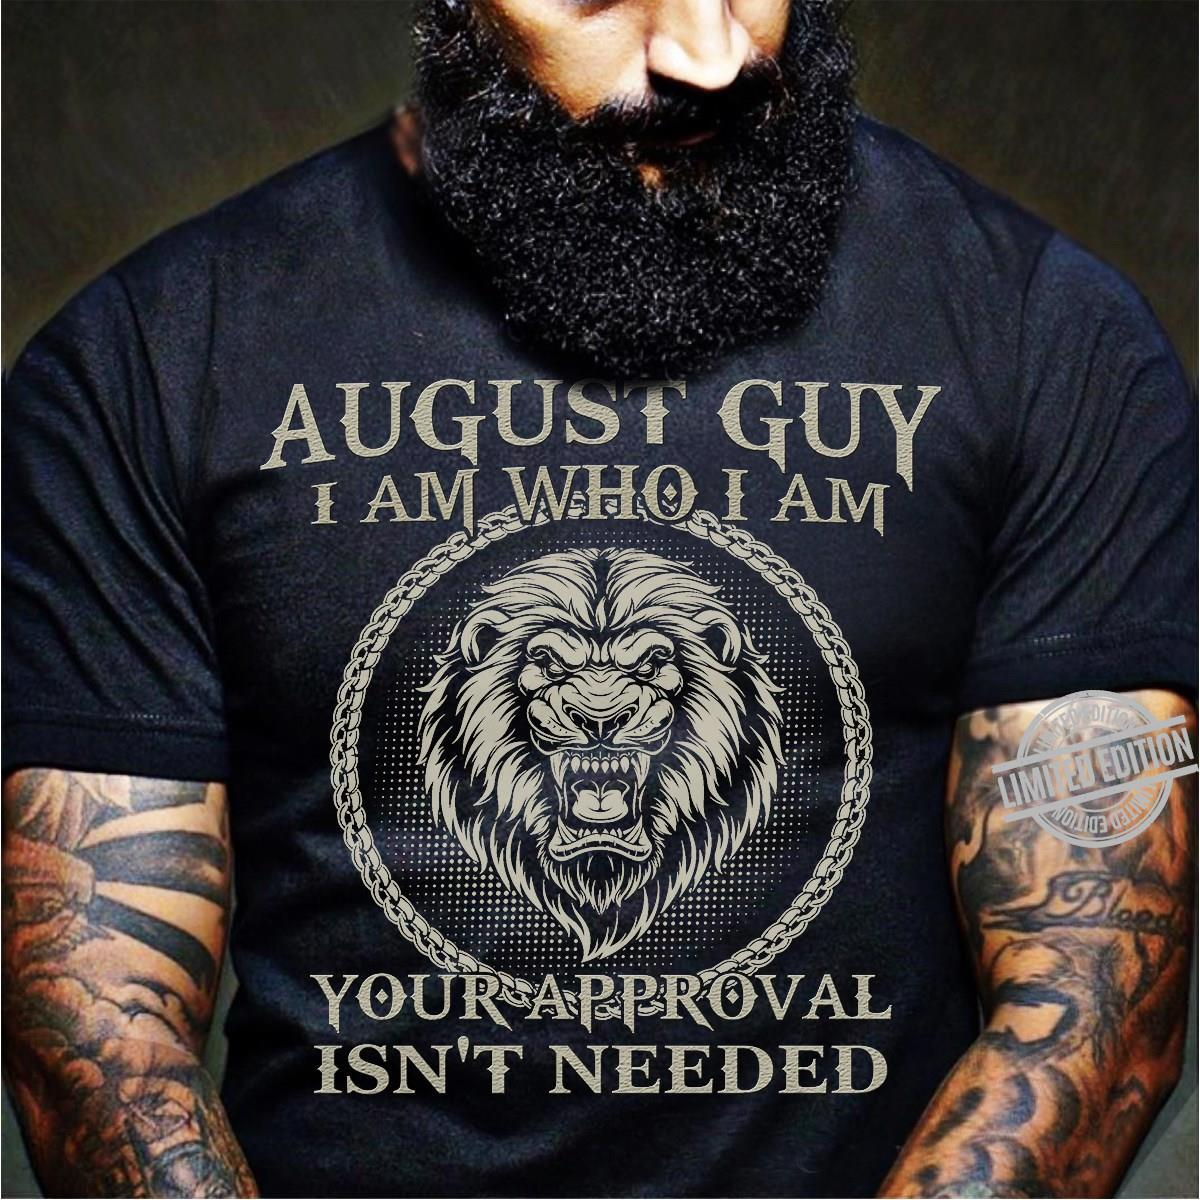 August Guy I Am Who I Am Your Approval Isn't Needed Shirt